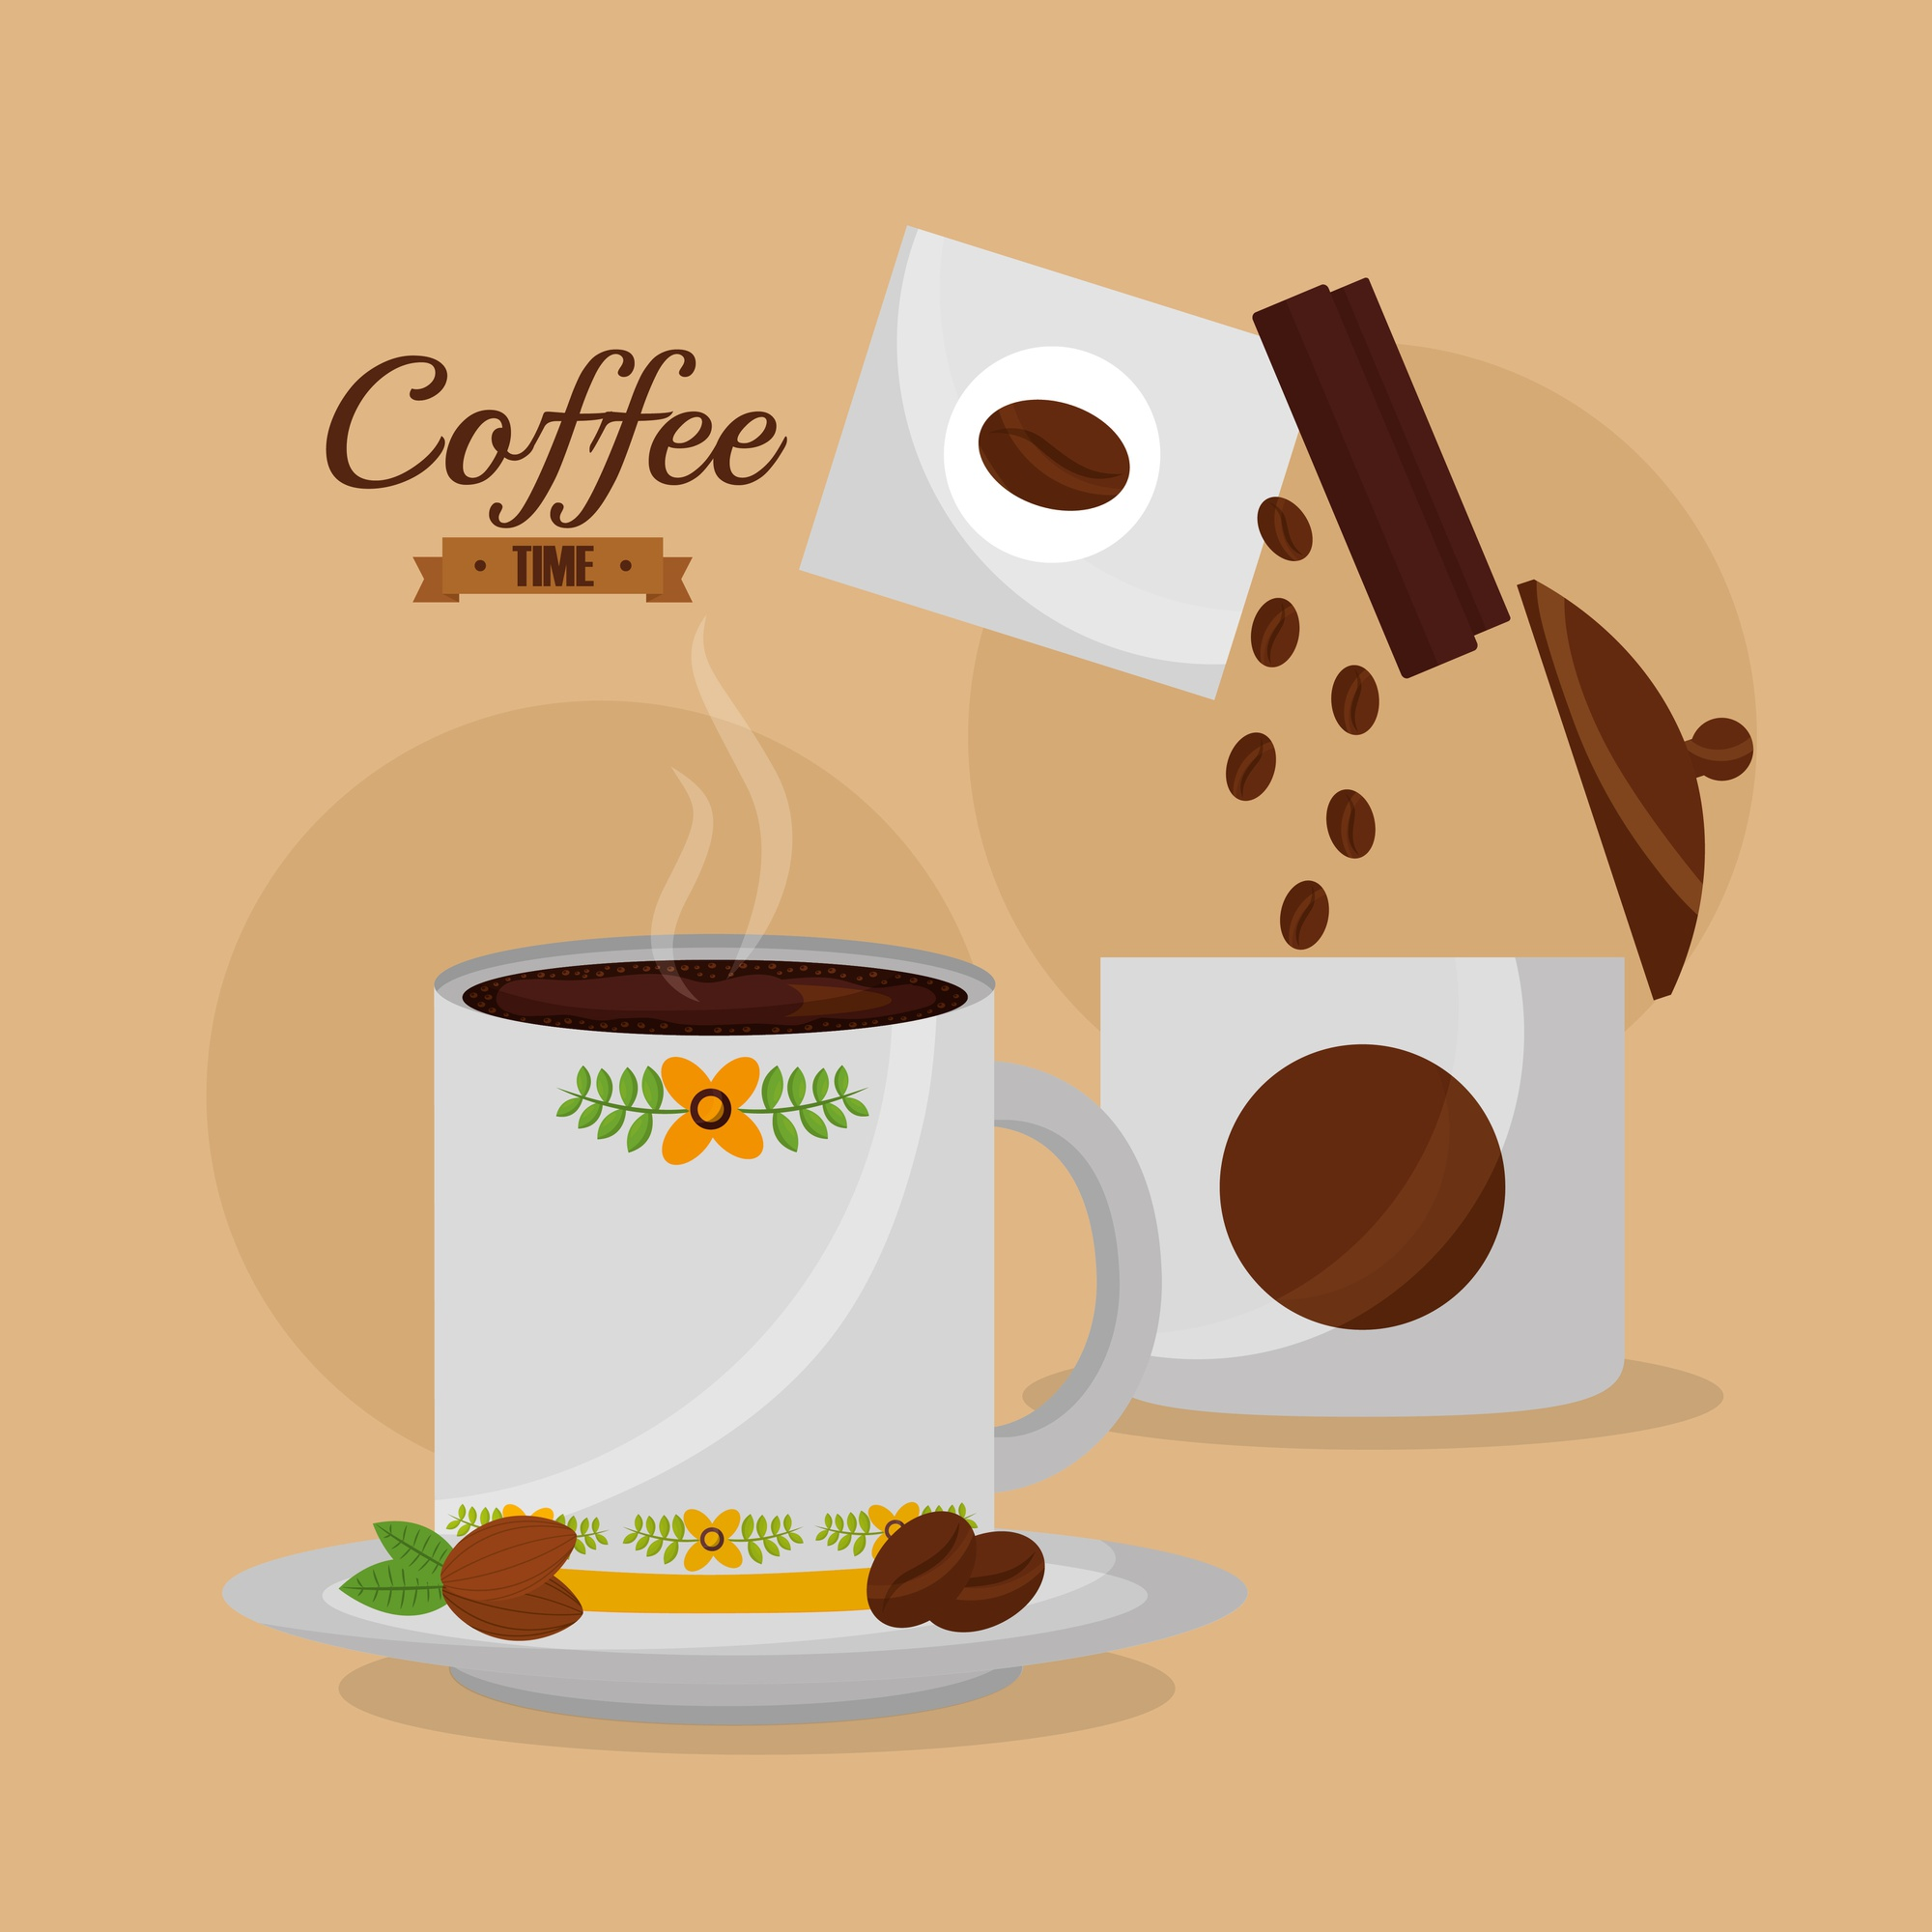 Coffee time mug with hot beverage and seeds